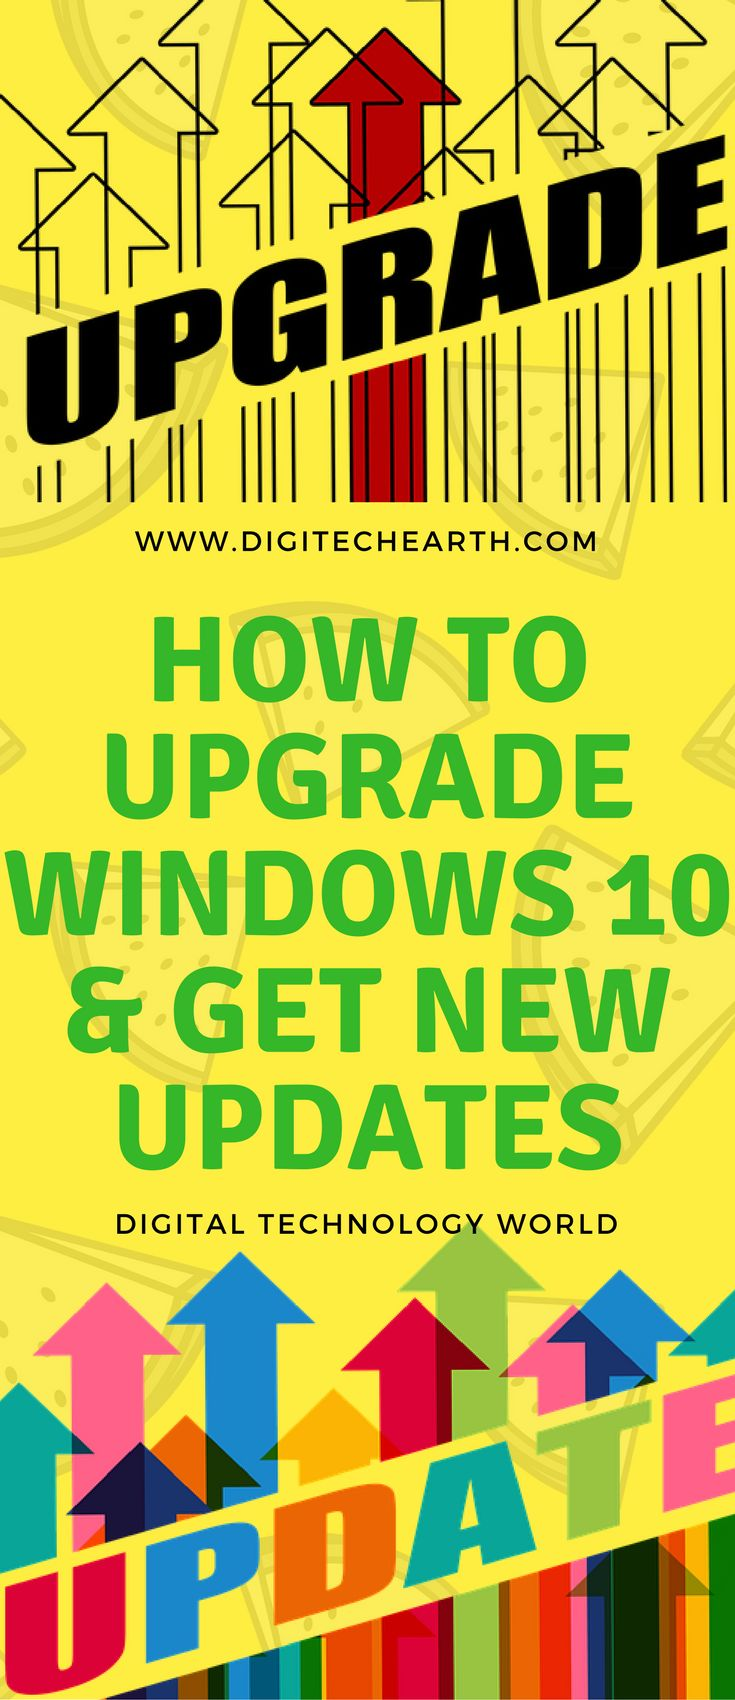 While announcing Microsoft's launch of Windows 10, Microsoft had made it clear that Windows users could upgrade this for Free up to July 29 2016, but many users missed this opportunity. But don't worry! It is possible to upgrade it free for the windows 7 and windows 8.1 users. The only requirement is that your windows versions should be original and no any file should be opened while upgrade process is going on.In this article we will talk aboutHow to Upgrade Windows 10 & Get New Updates